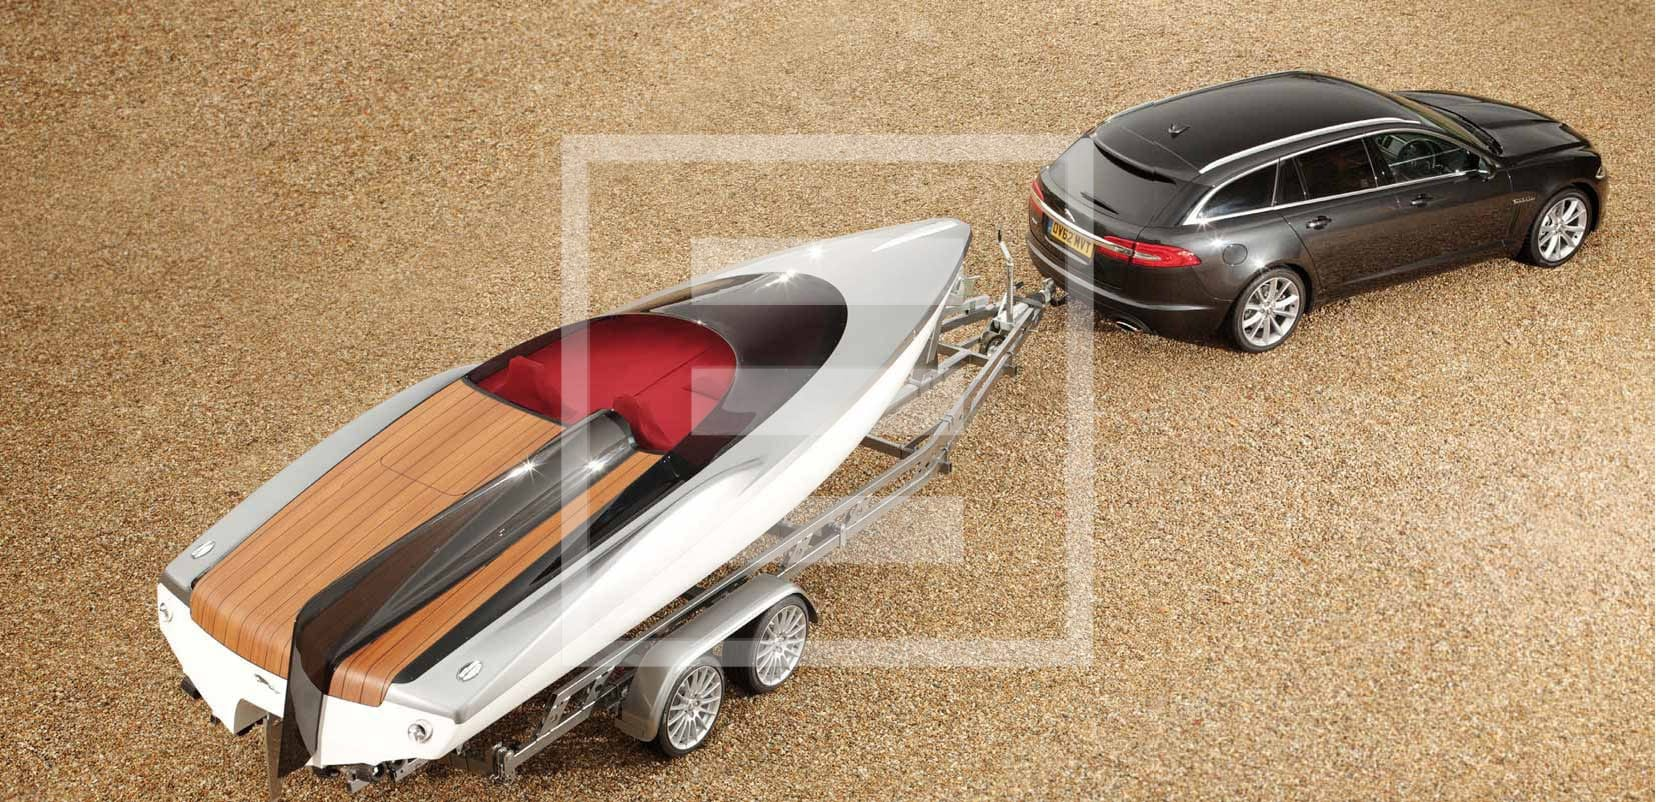 The Jaguar XF Sportbrake and the Concept Speedboat designed by Ian Callum for the launch of the iconic English marque's model. The Speedboat's vertical fin is inspired by the Jaguar E2A